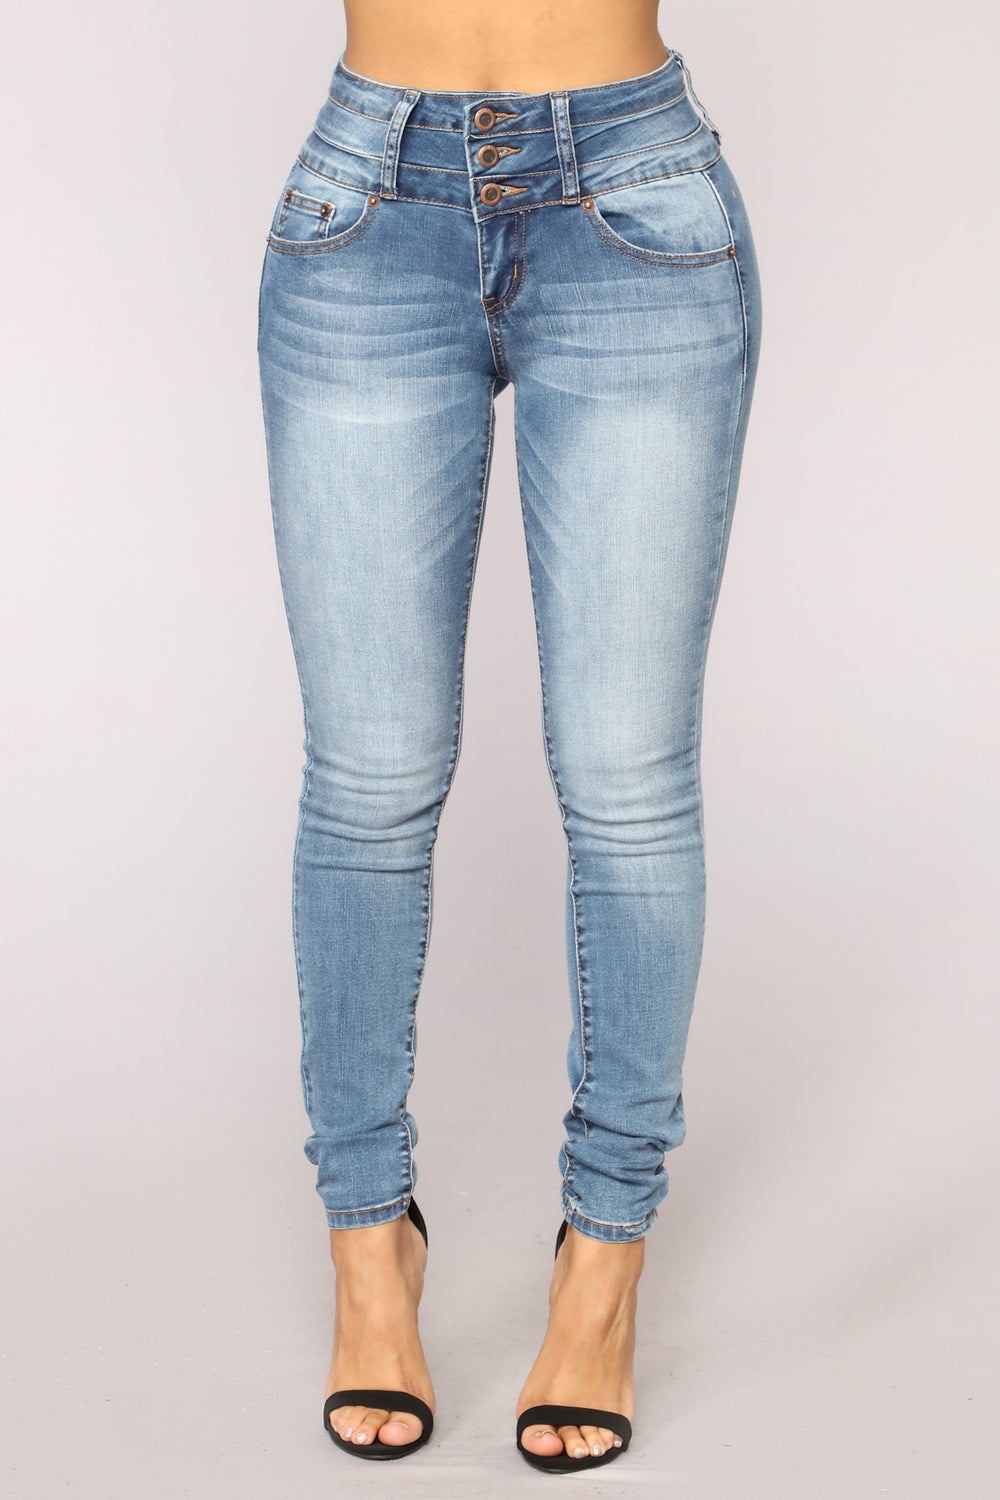 Odds Stacked Against Me Jeans - Medium Blue Wash